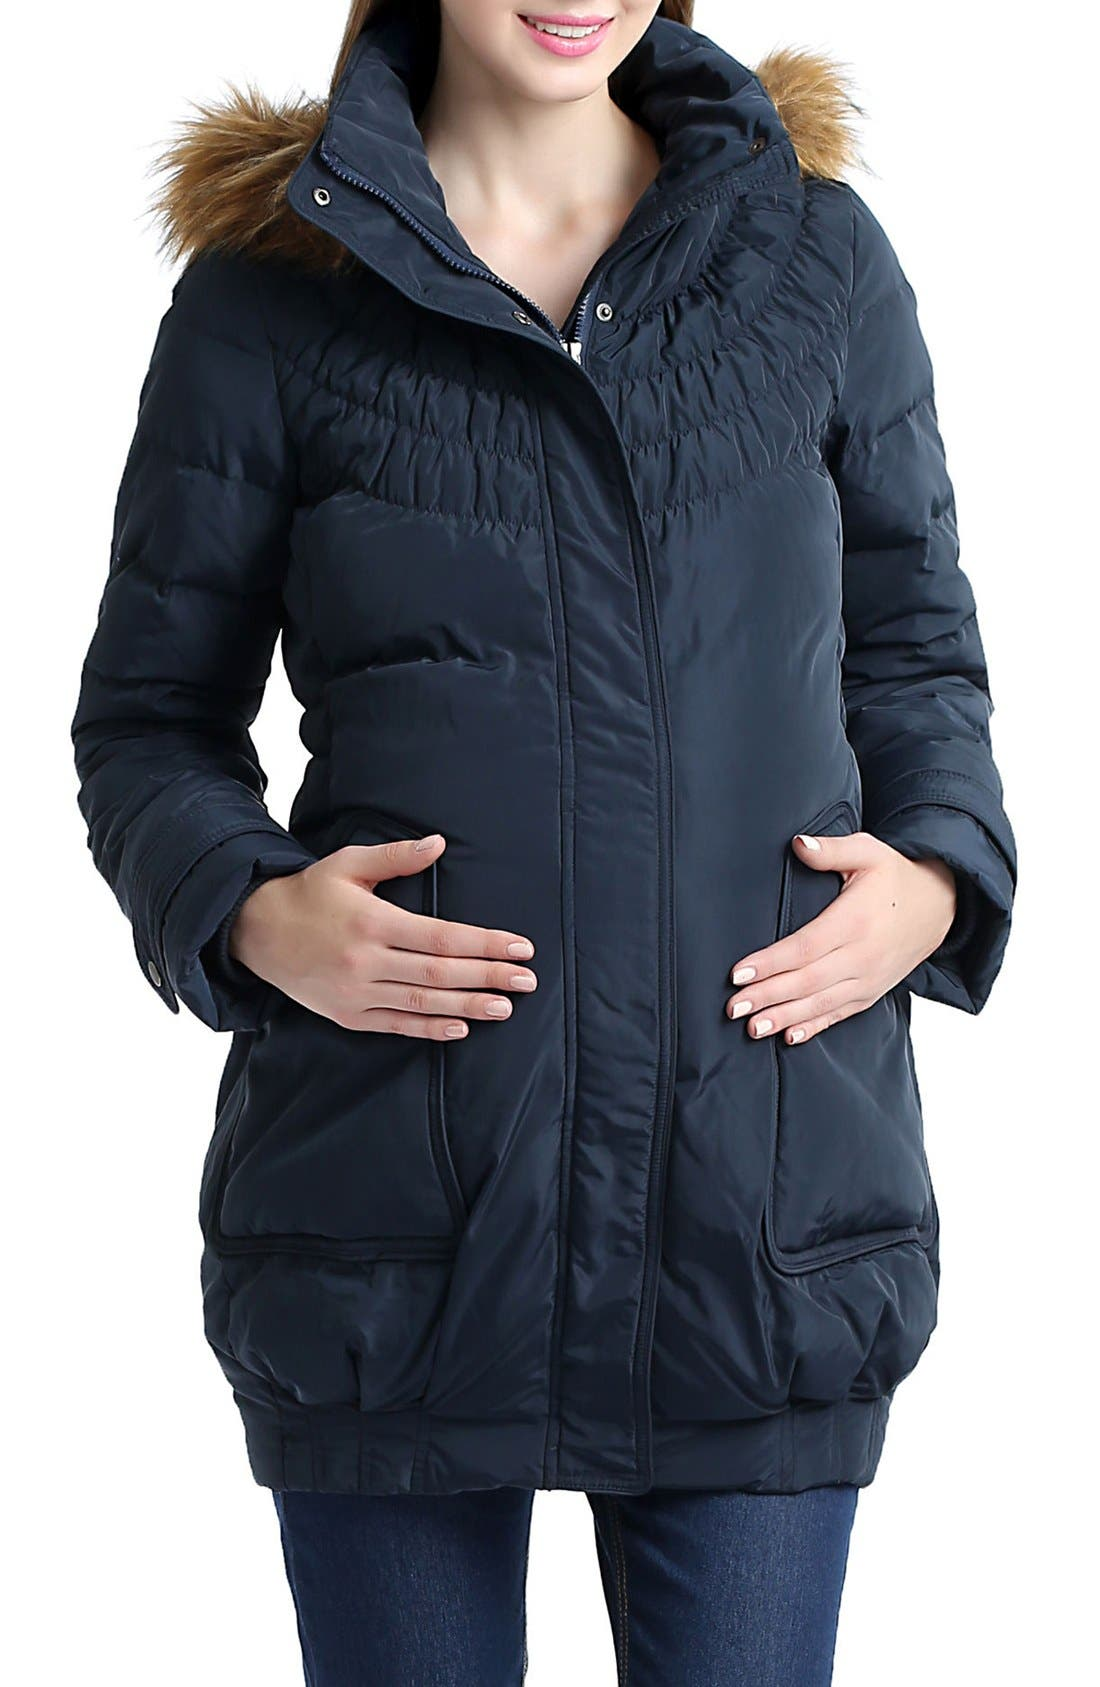 'Arlo' Water Resistant Down Maternity Parka with Baby Carrier Cover Inset,                             Main thumbnail 1, color,                             Navy